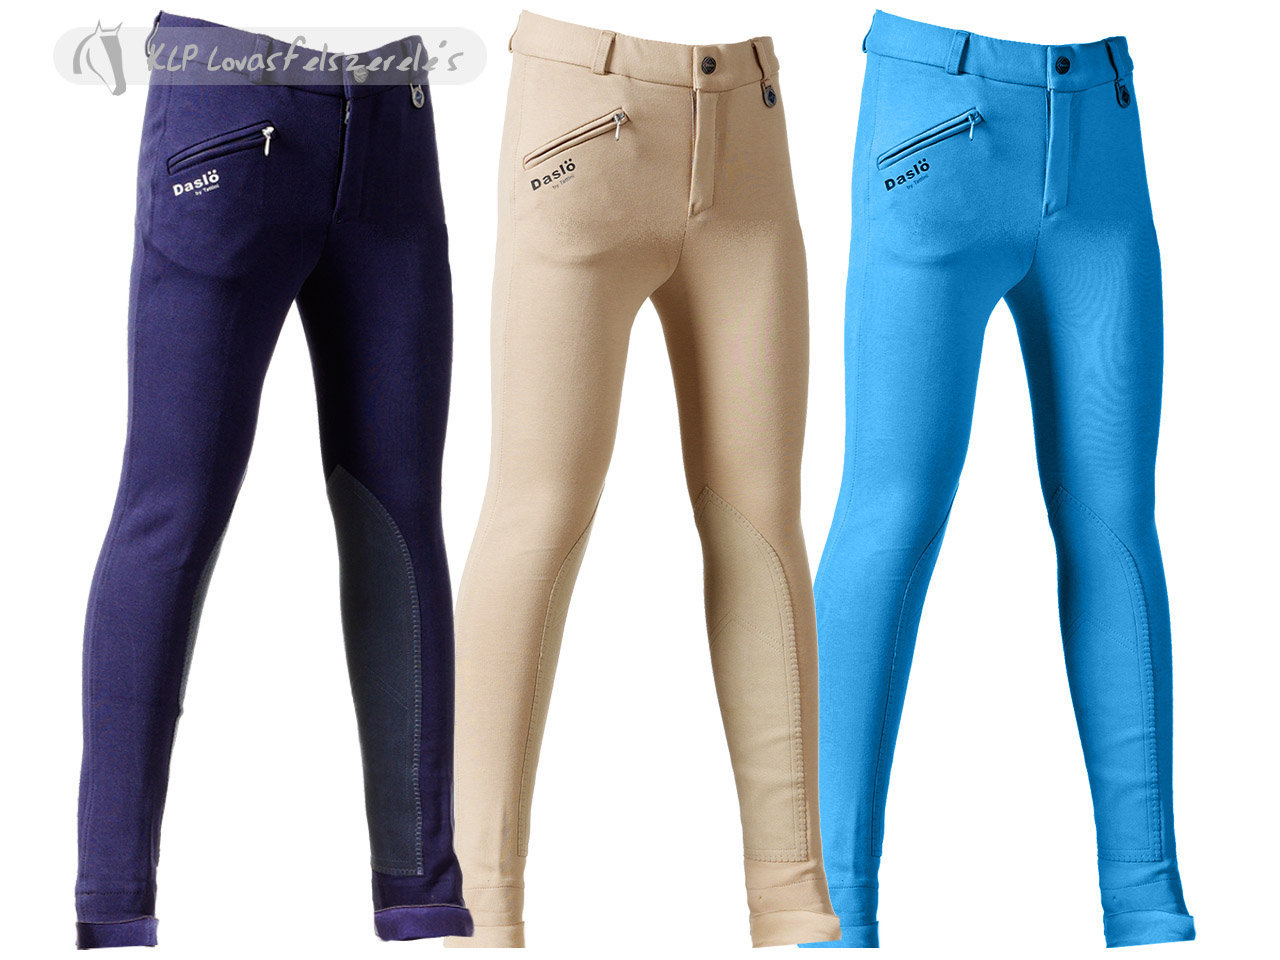 Daslö Children Jodhpurs Breeches With Suede Knee Patch